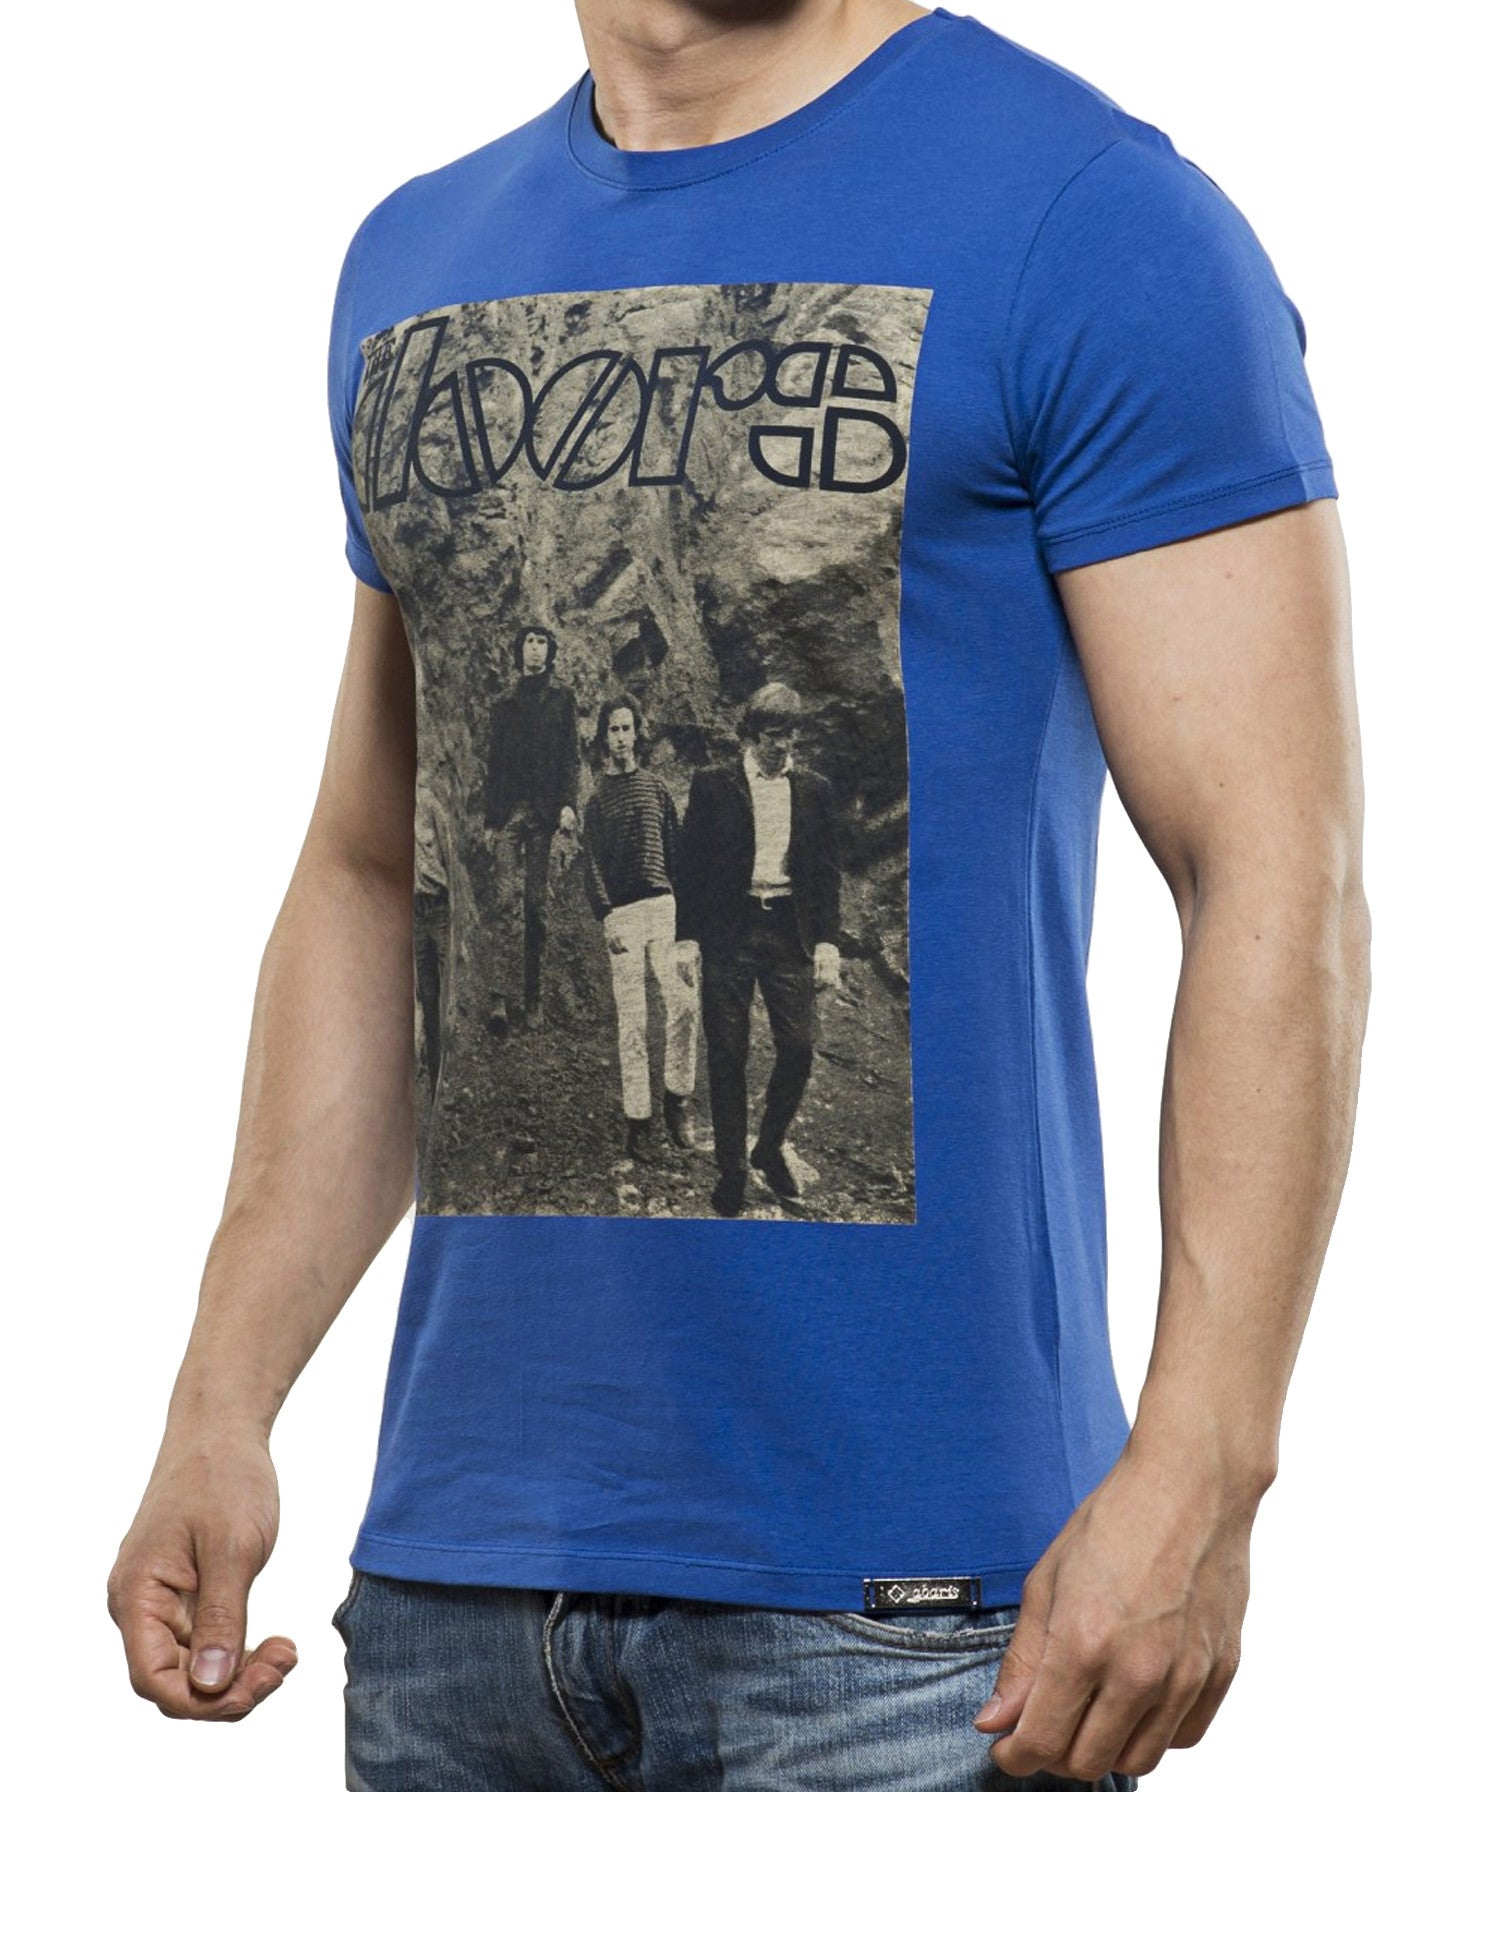 Doors T-Shirt Blue